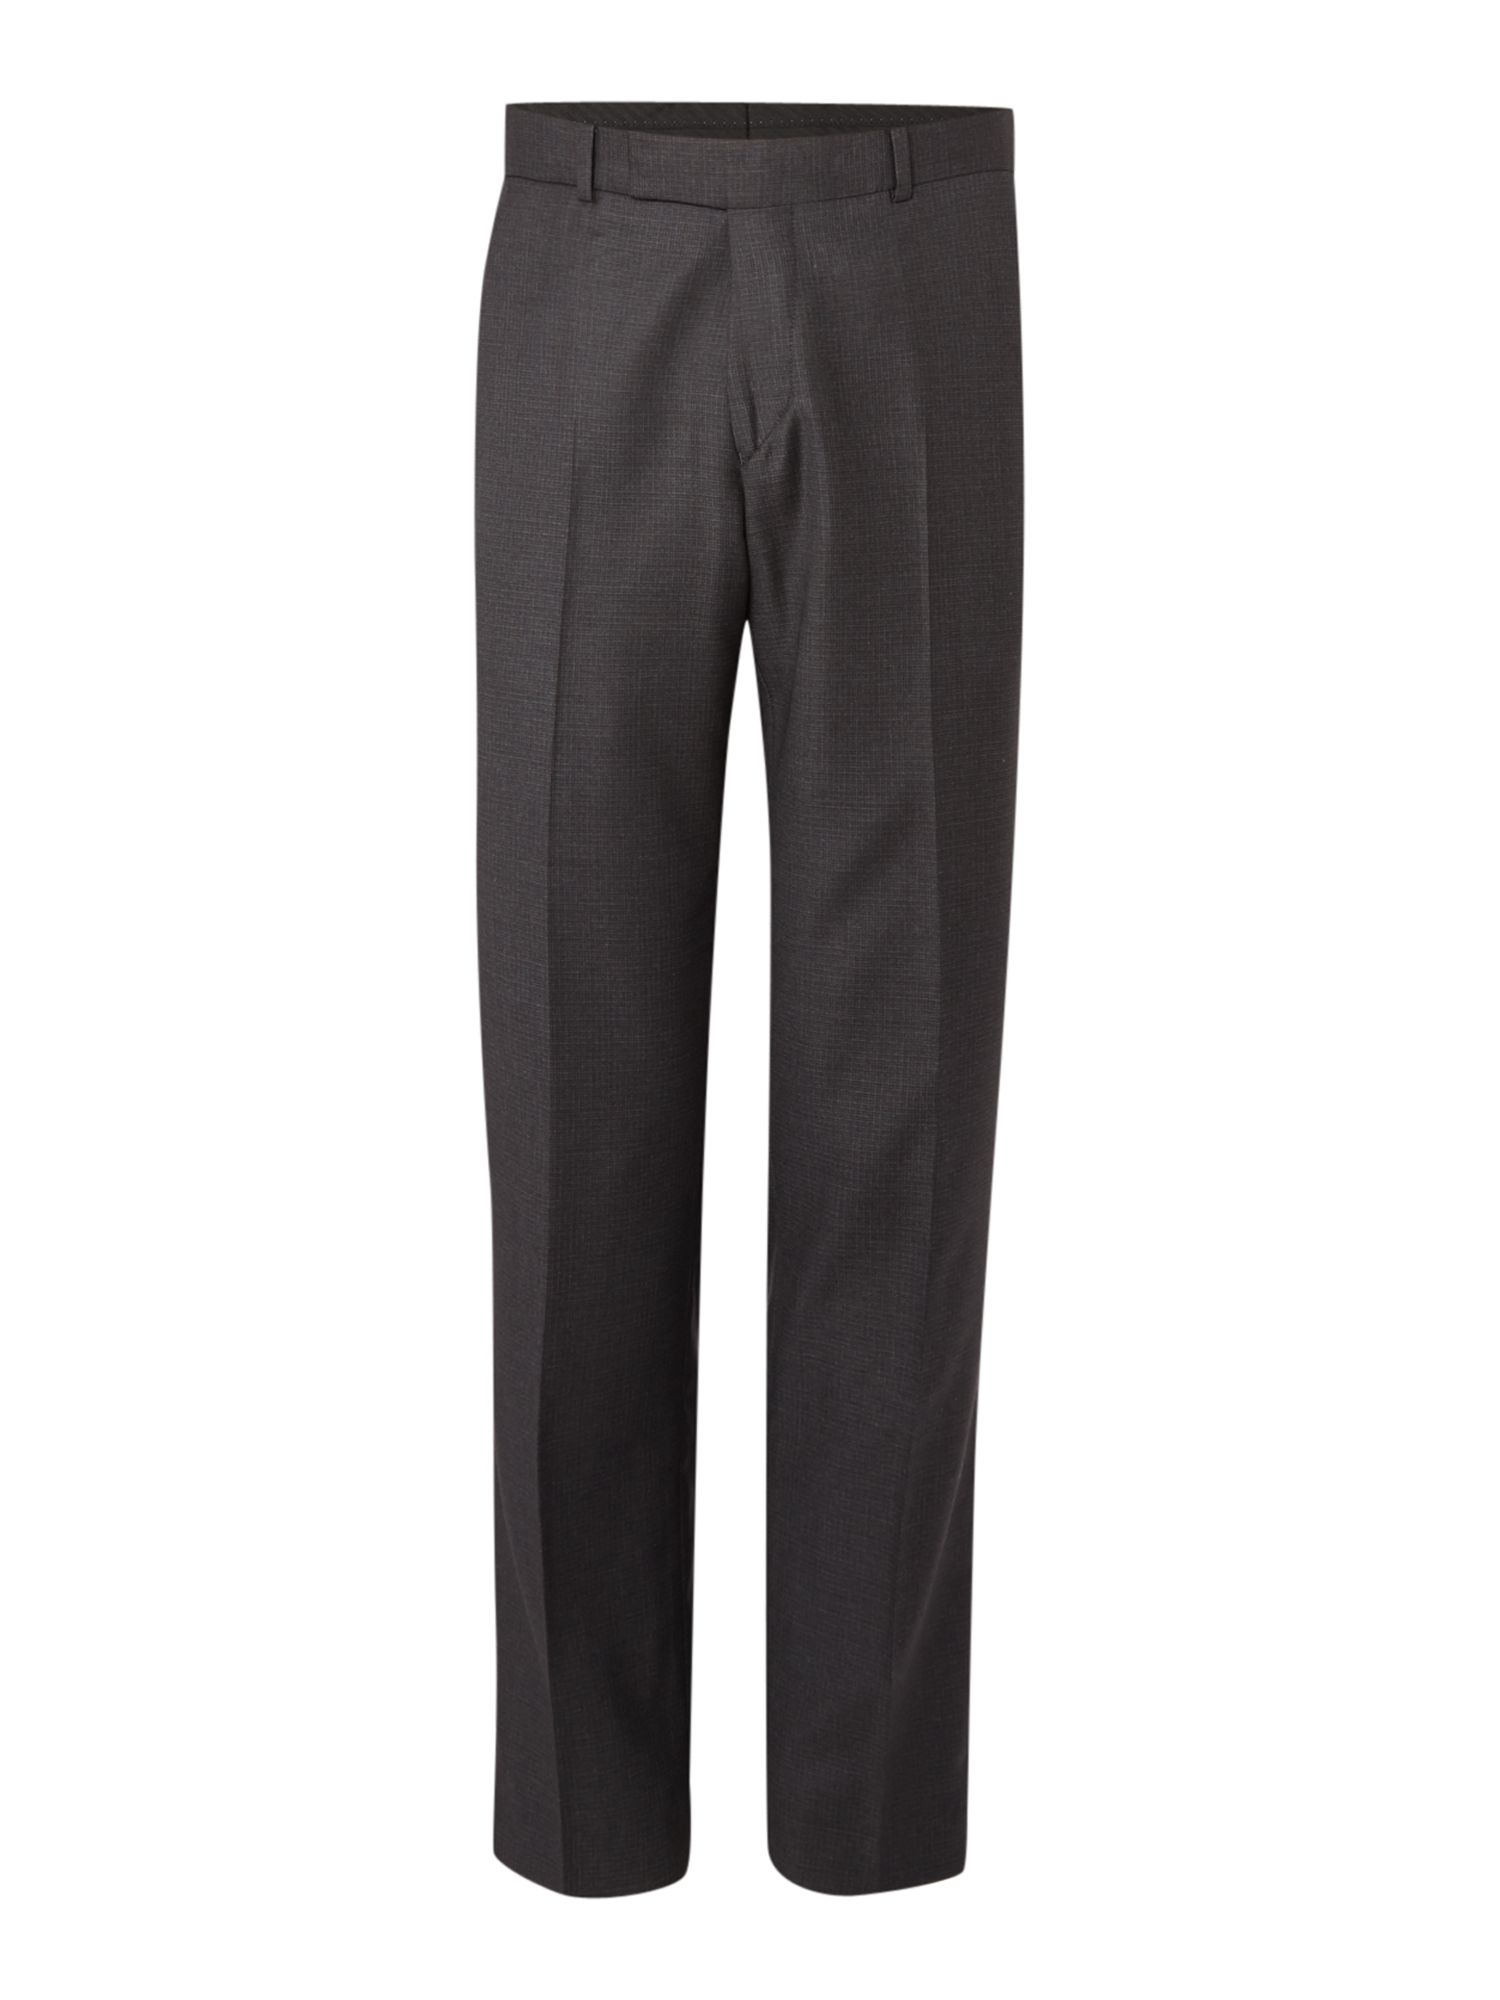 Men's Simon Carter Regular Semi Plain Squares Trousers, Grey